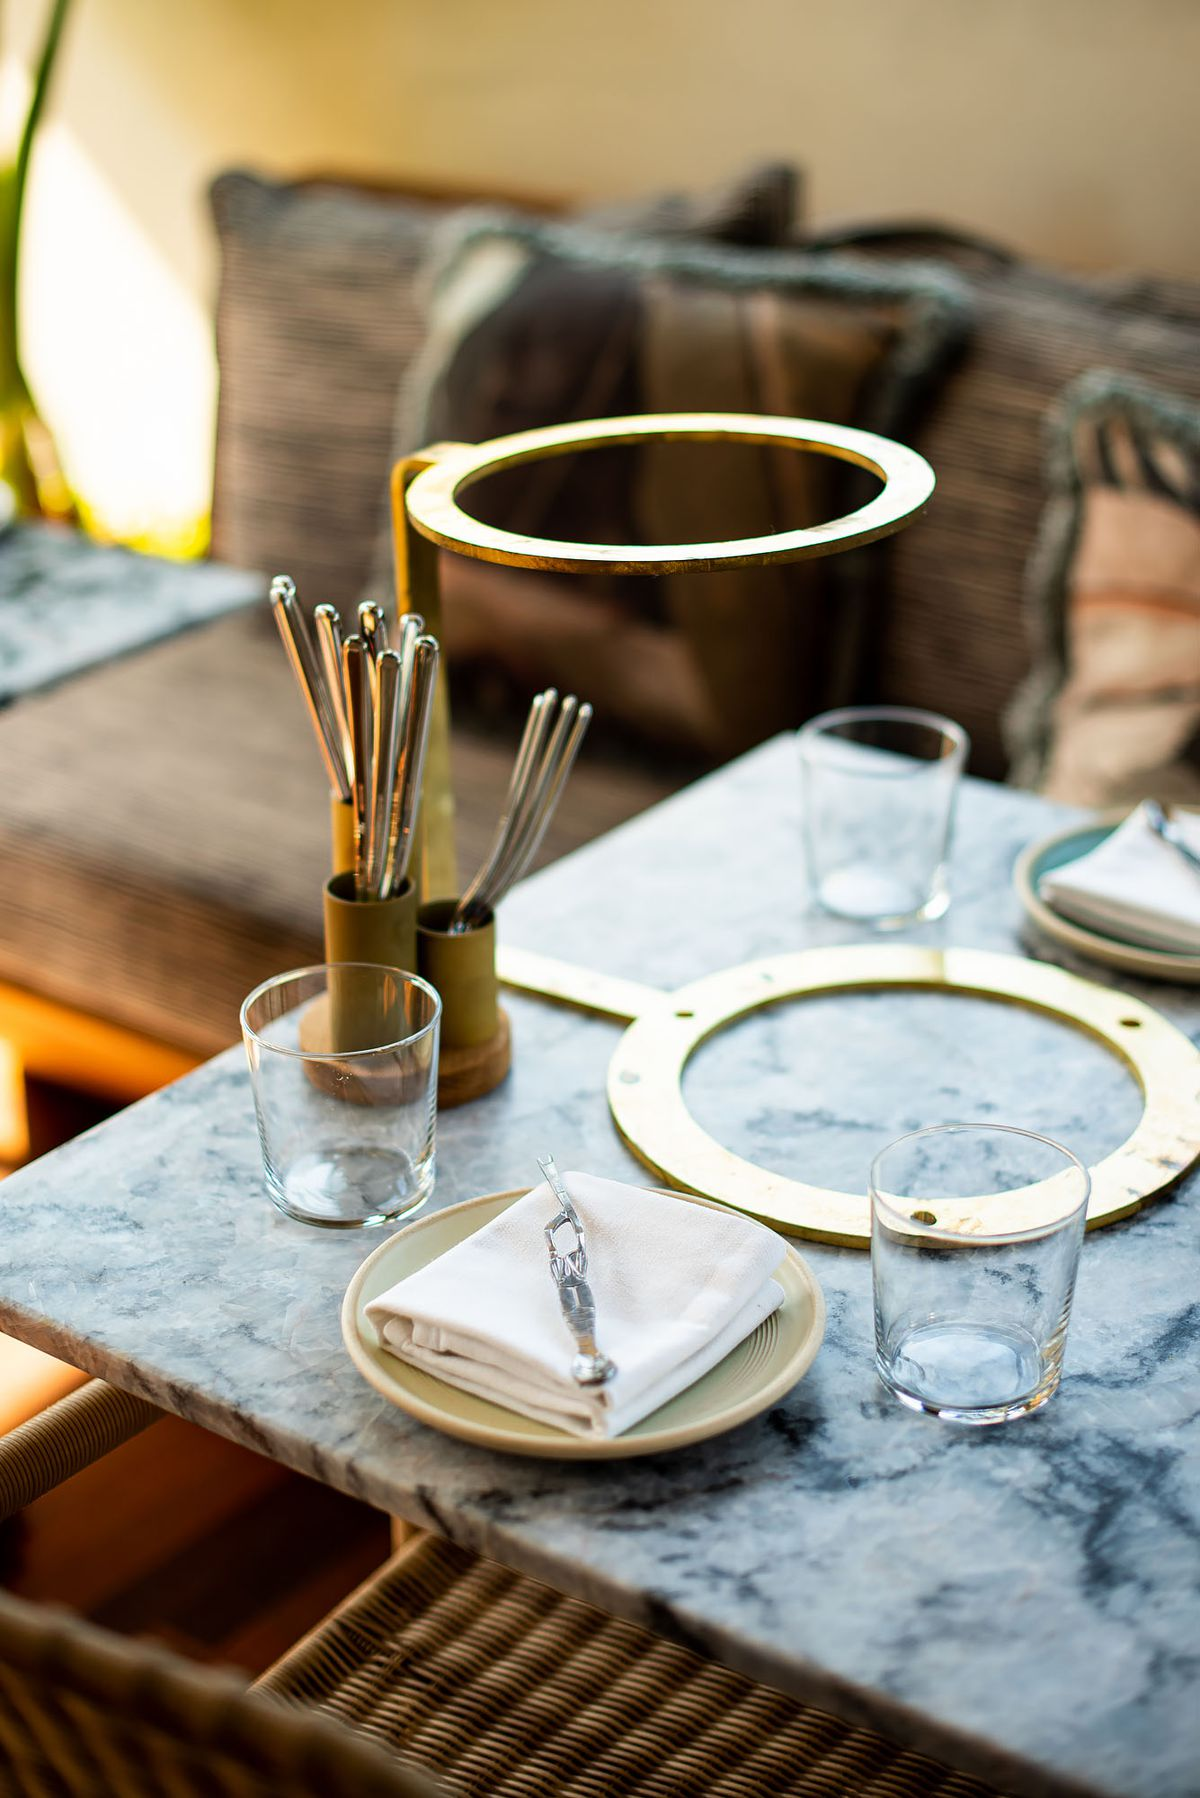 Marble and brass details on a table.